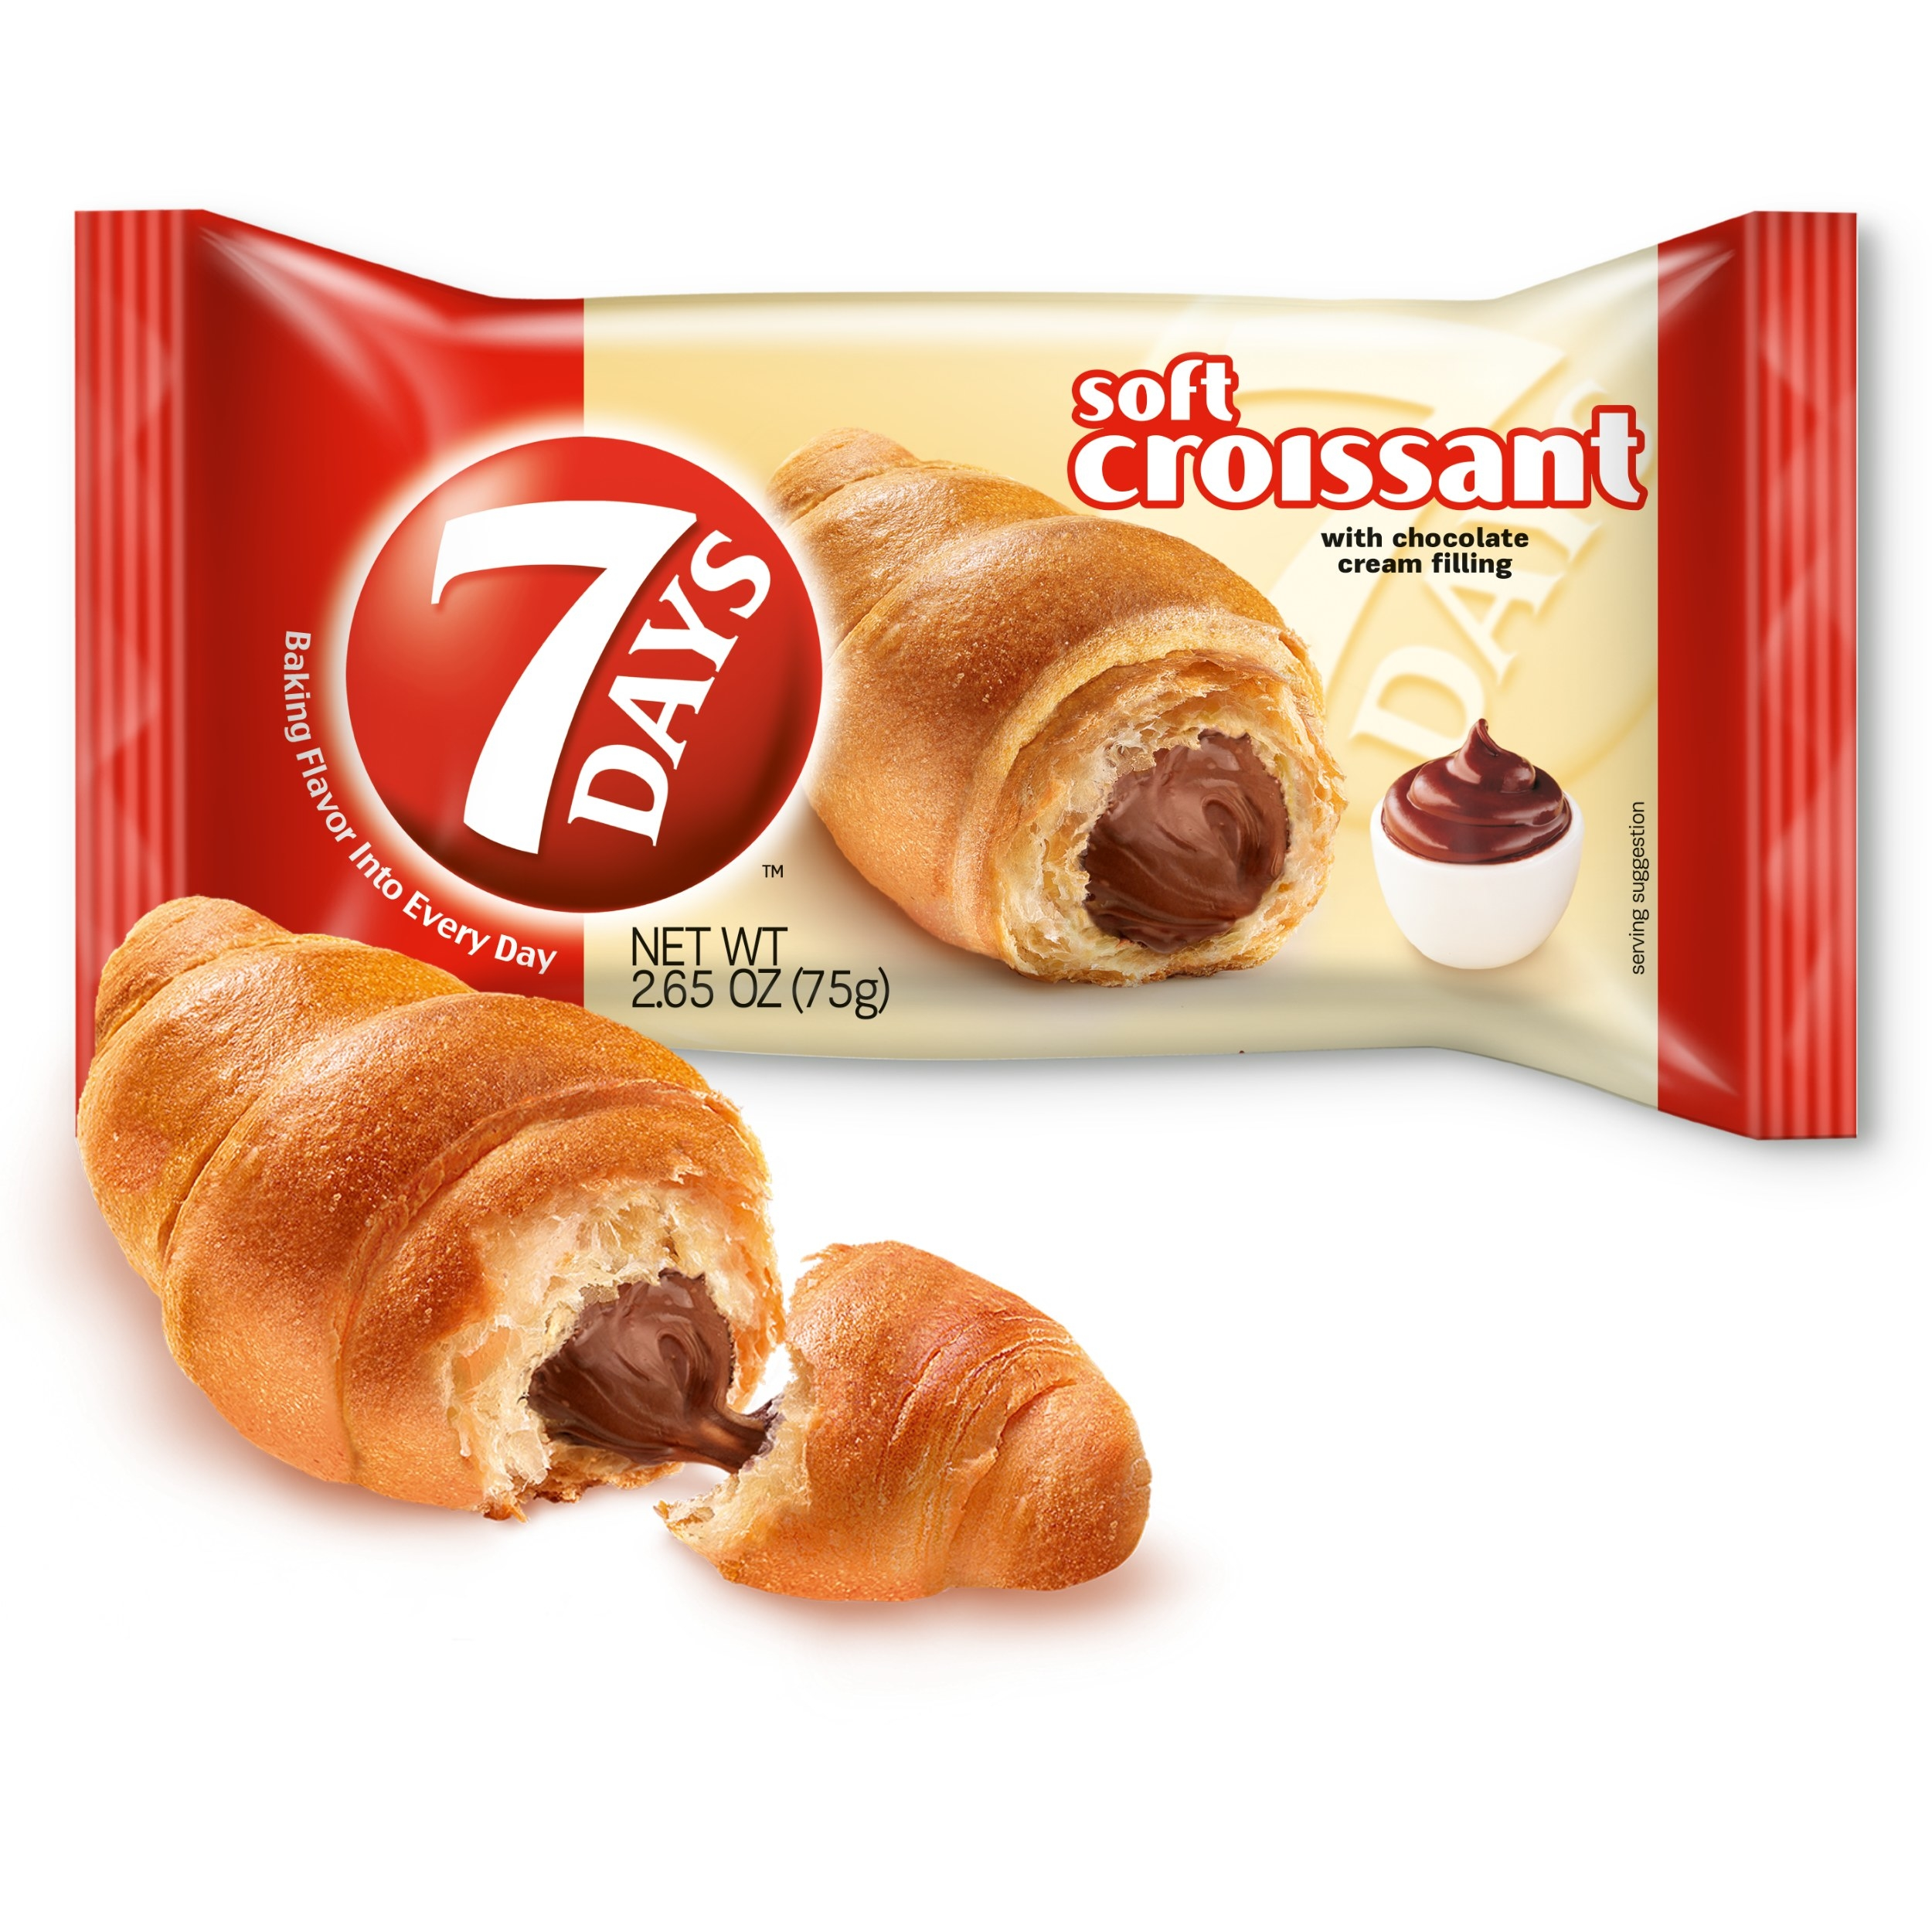 7 Days chocolate filled croissant and packaging